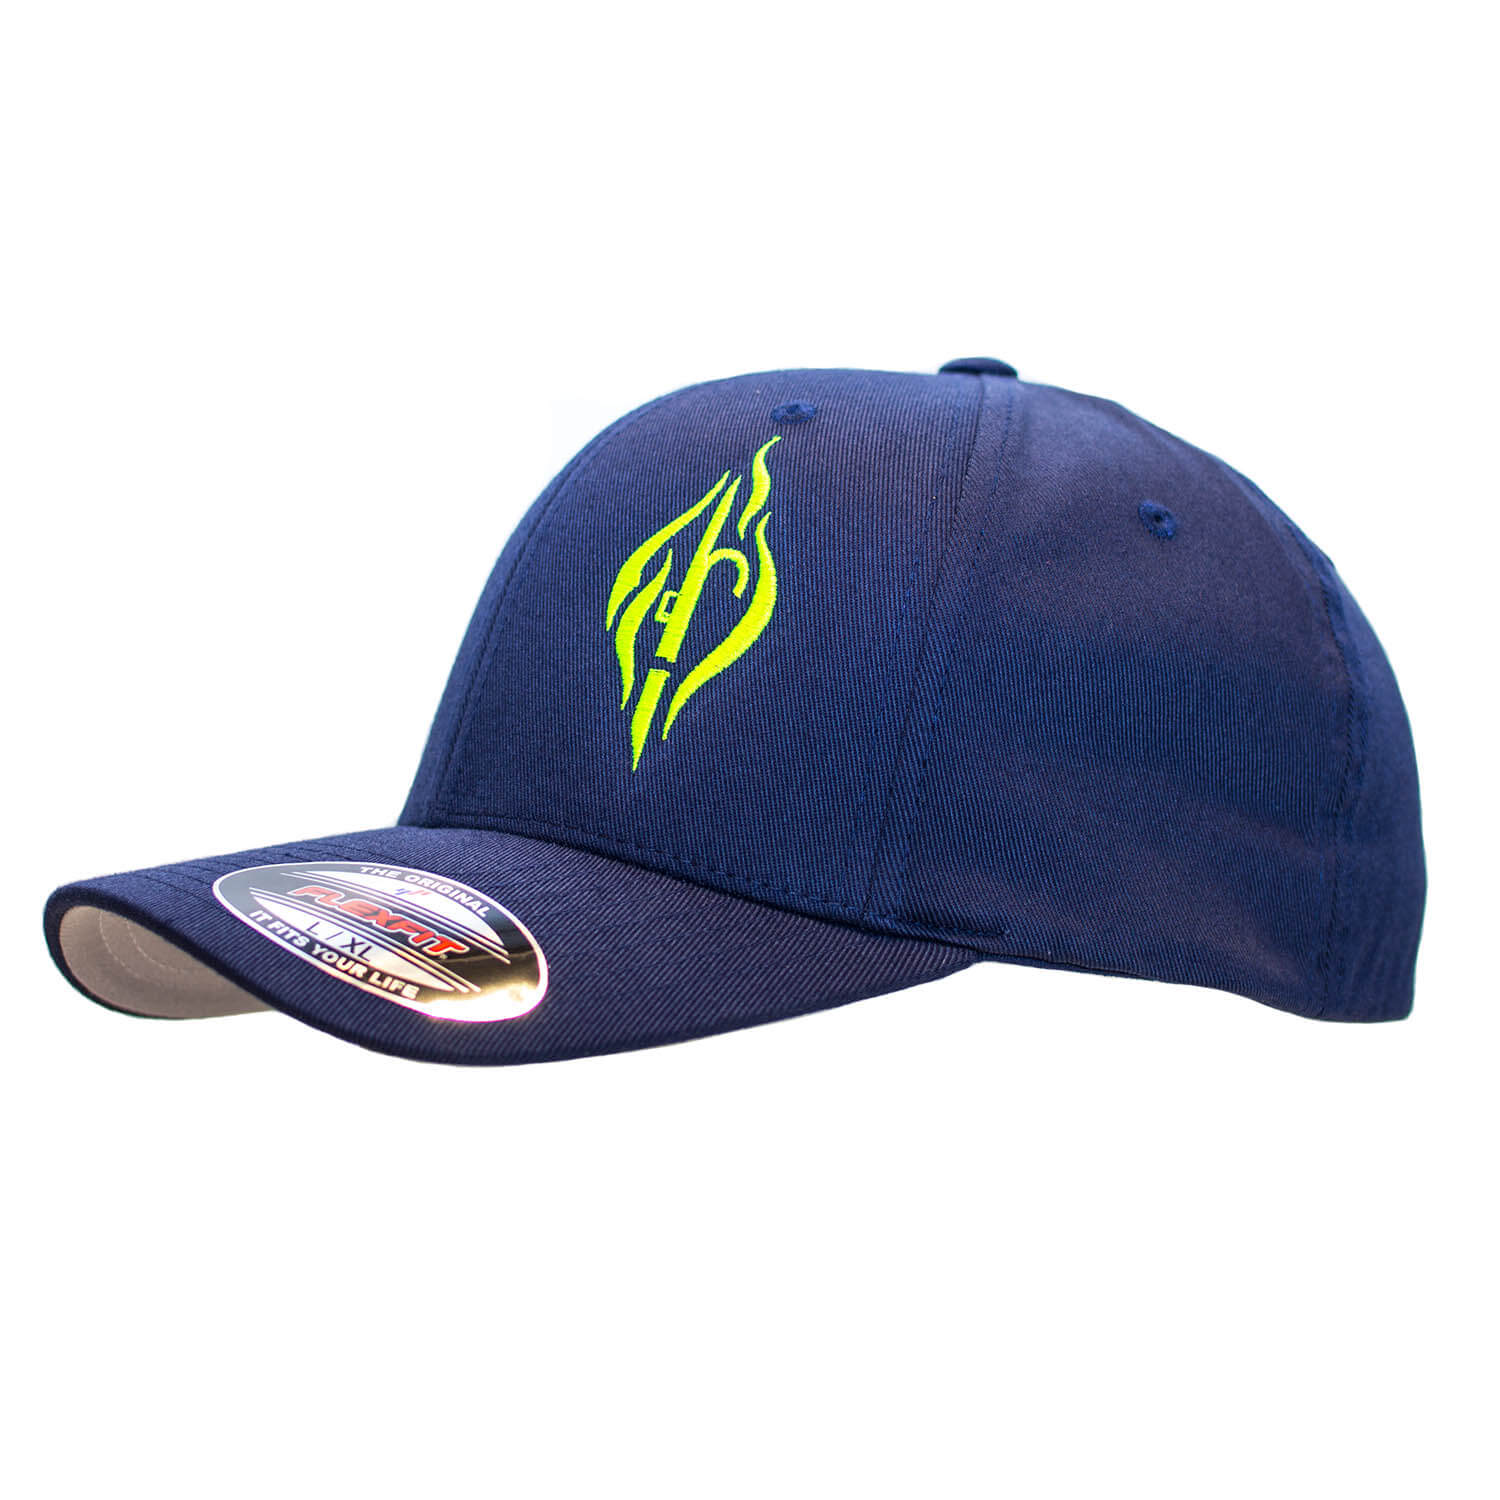 FIRE & HOOK Basecap Navy - Neon Line